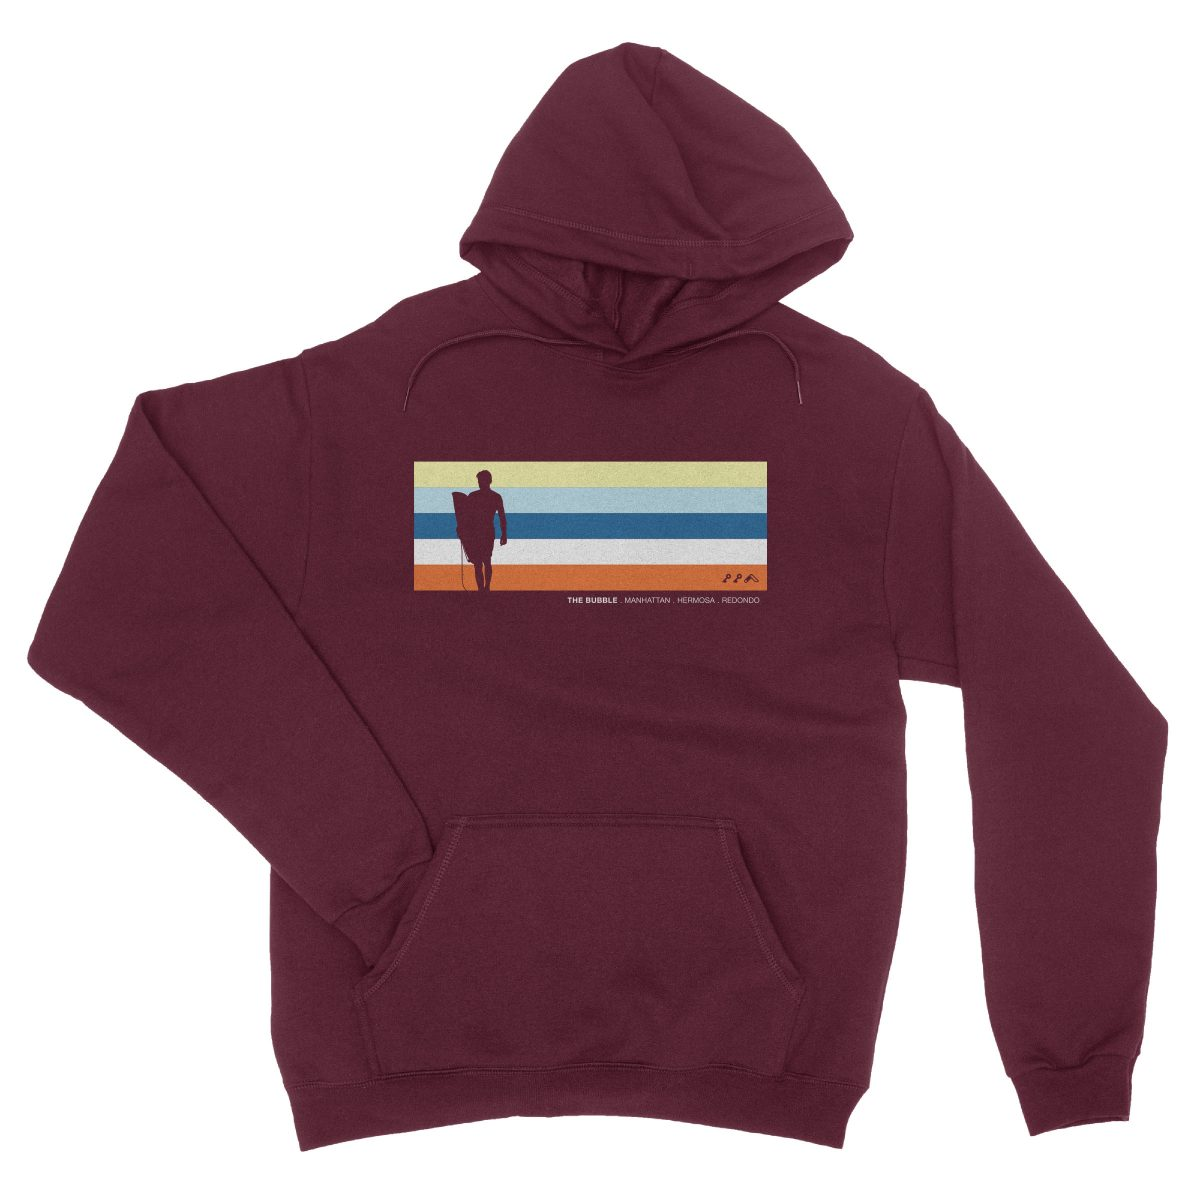 the bubble redondo hermosa manhattan beach hoodies in maroon by kikicutt sweatshirt store